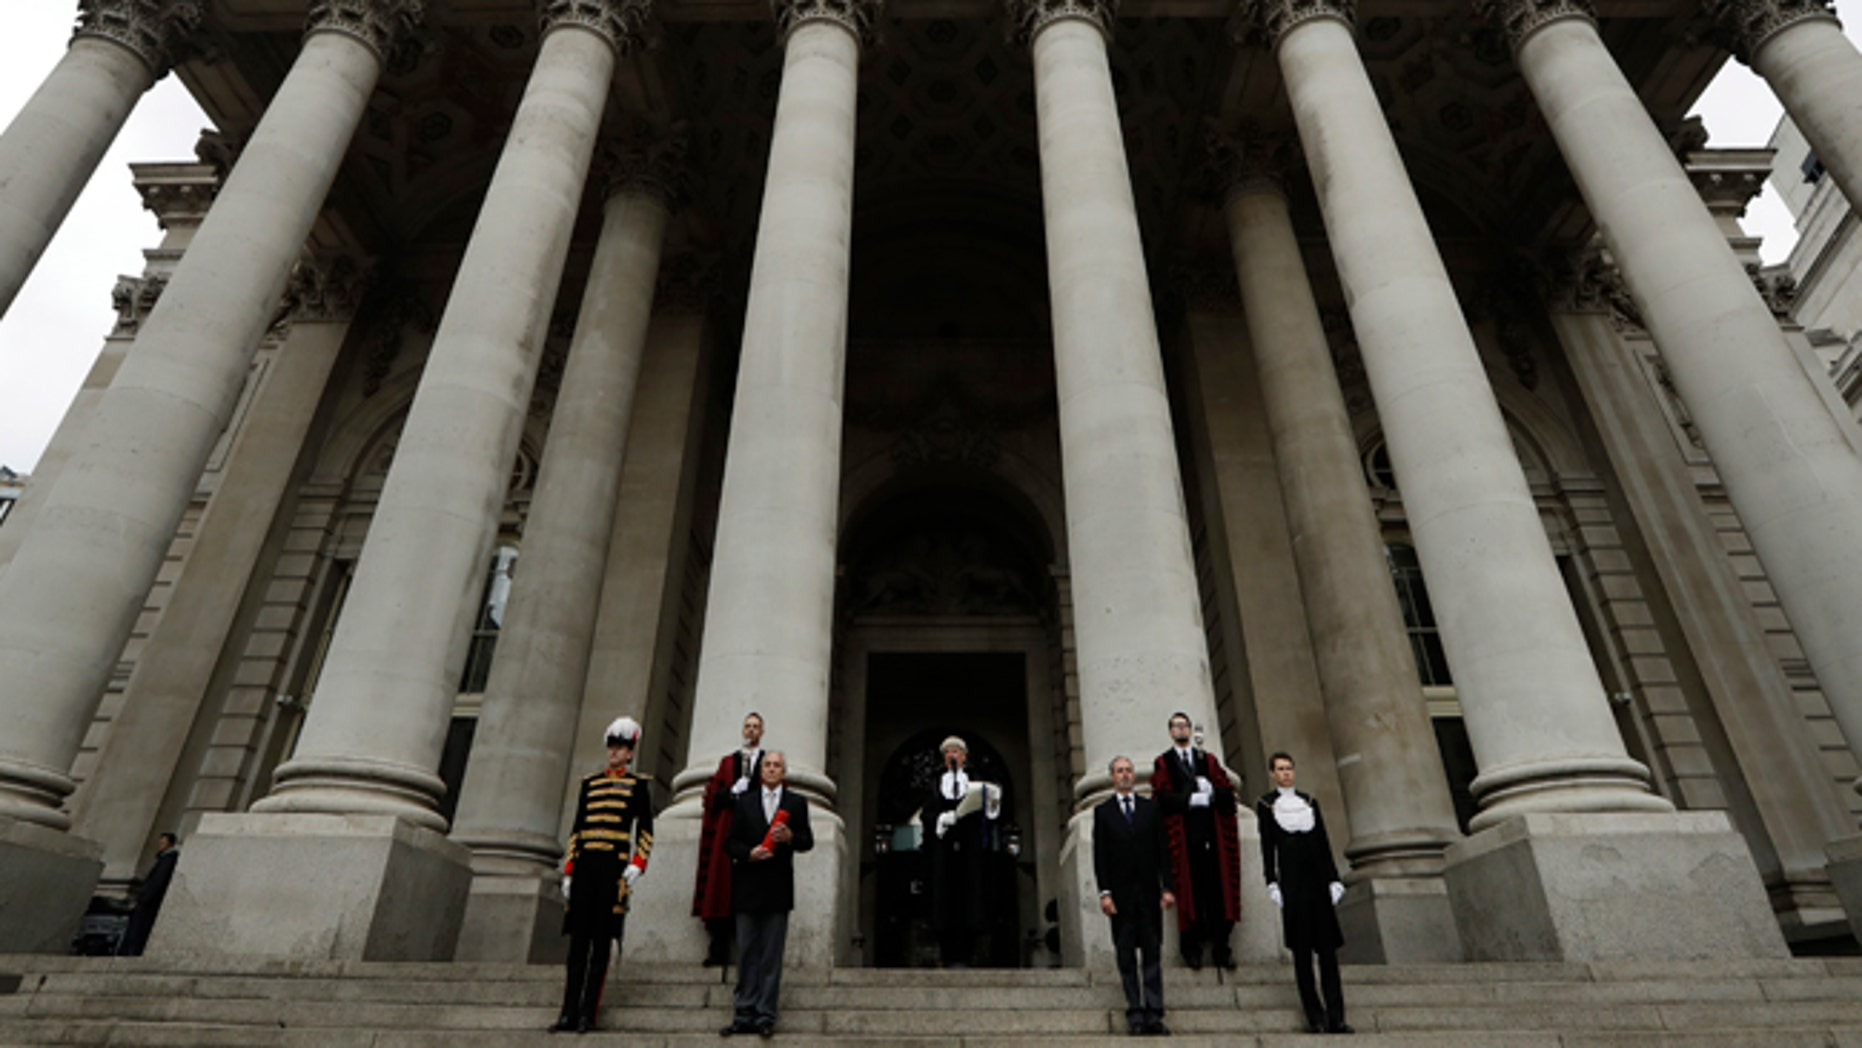 In keeping with traditional practice, Colonel Geoffrey Godbold, center, the City of London Corporation's Common Cryer and Serjeant-at-Arms reads out the Proclamation of the Summons for a new Parliament on the steps of the Royal Exchange, in the City of London, Thursday, May 4, 2017. All 650 seats in the House of Commons are up for grabs in the June 8 election. (AP Photo/Matt Dunham)